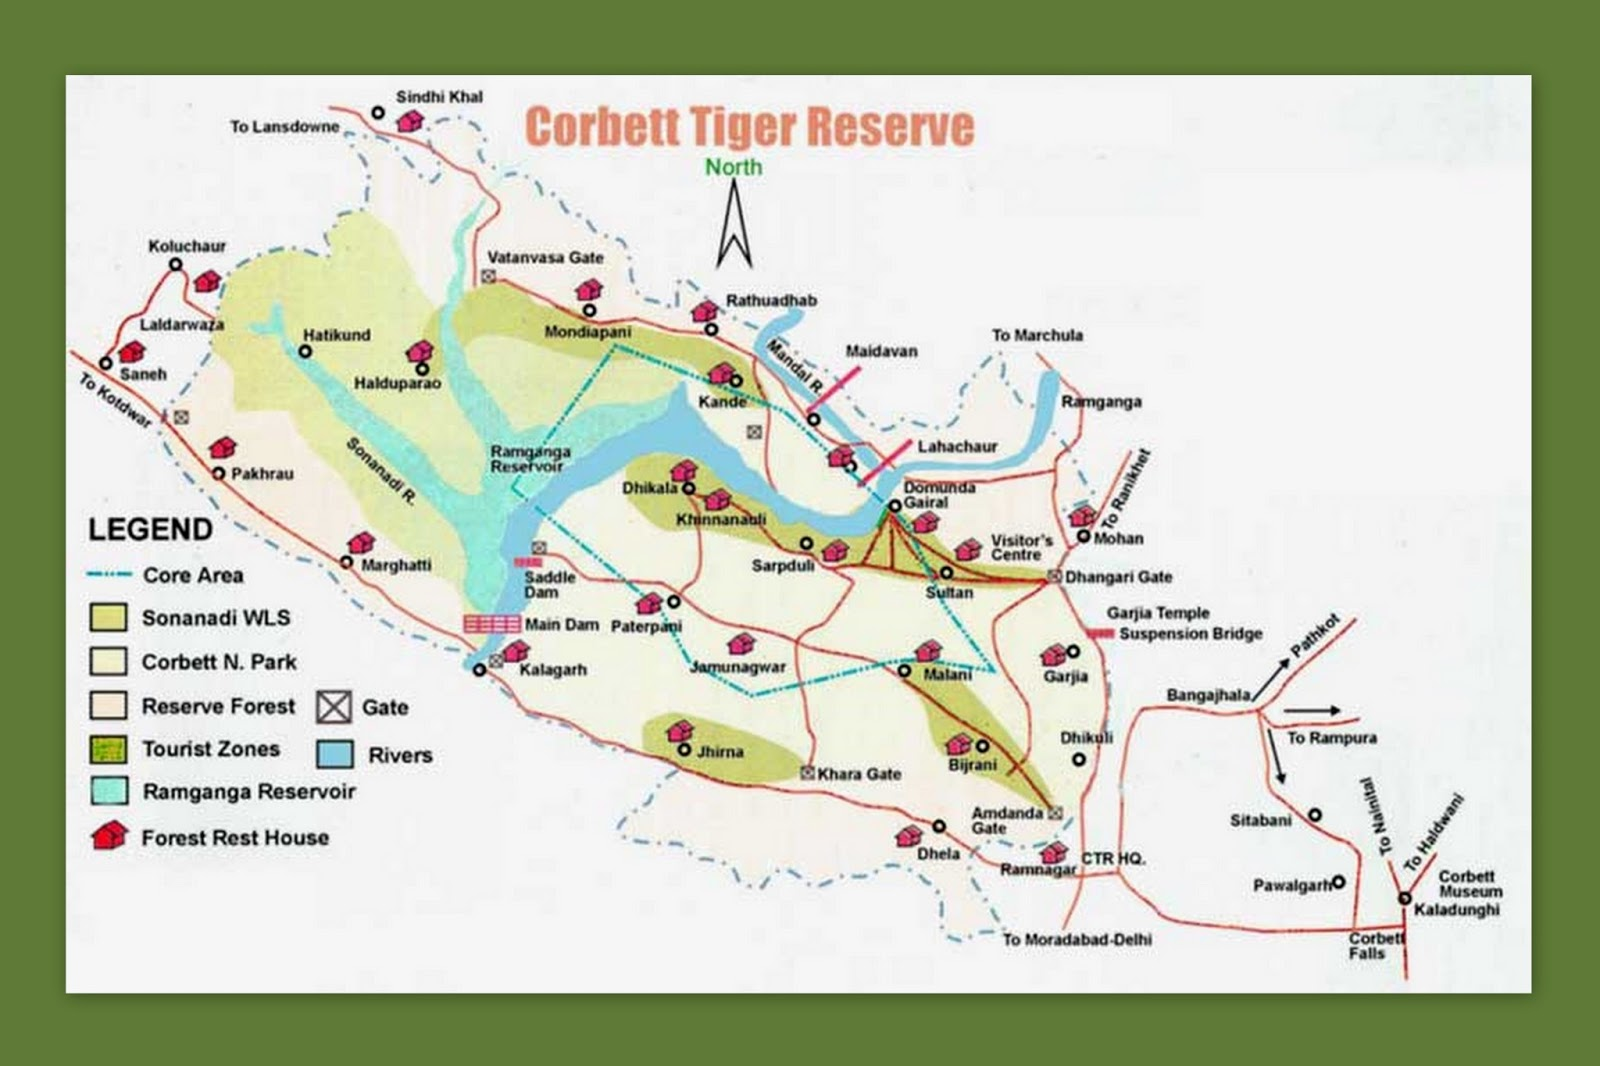 corbett tiger reserve Learn what makes corbett national park so special - it's history, the landscape, the flora and fauna.